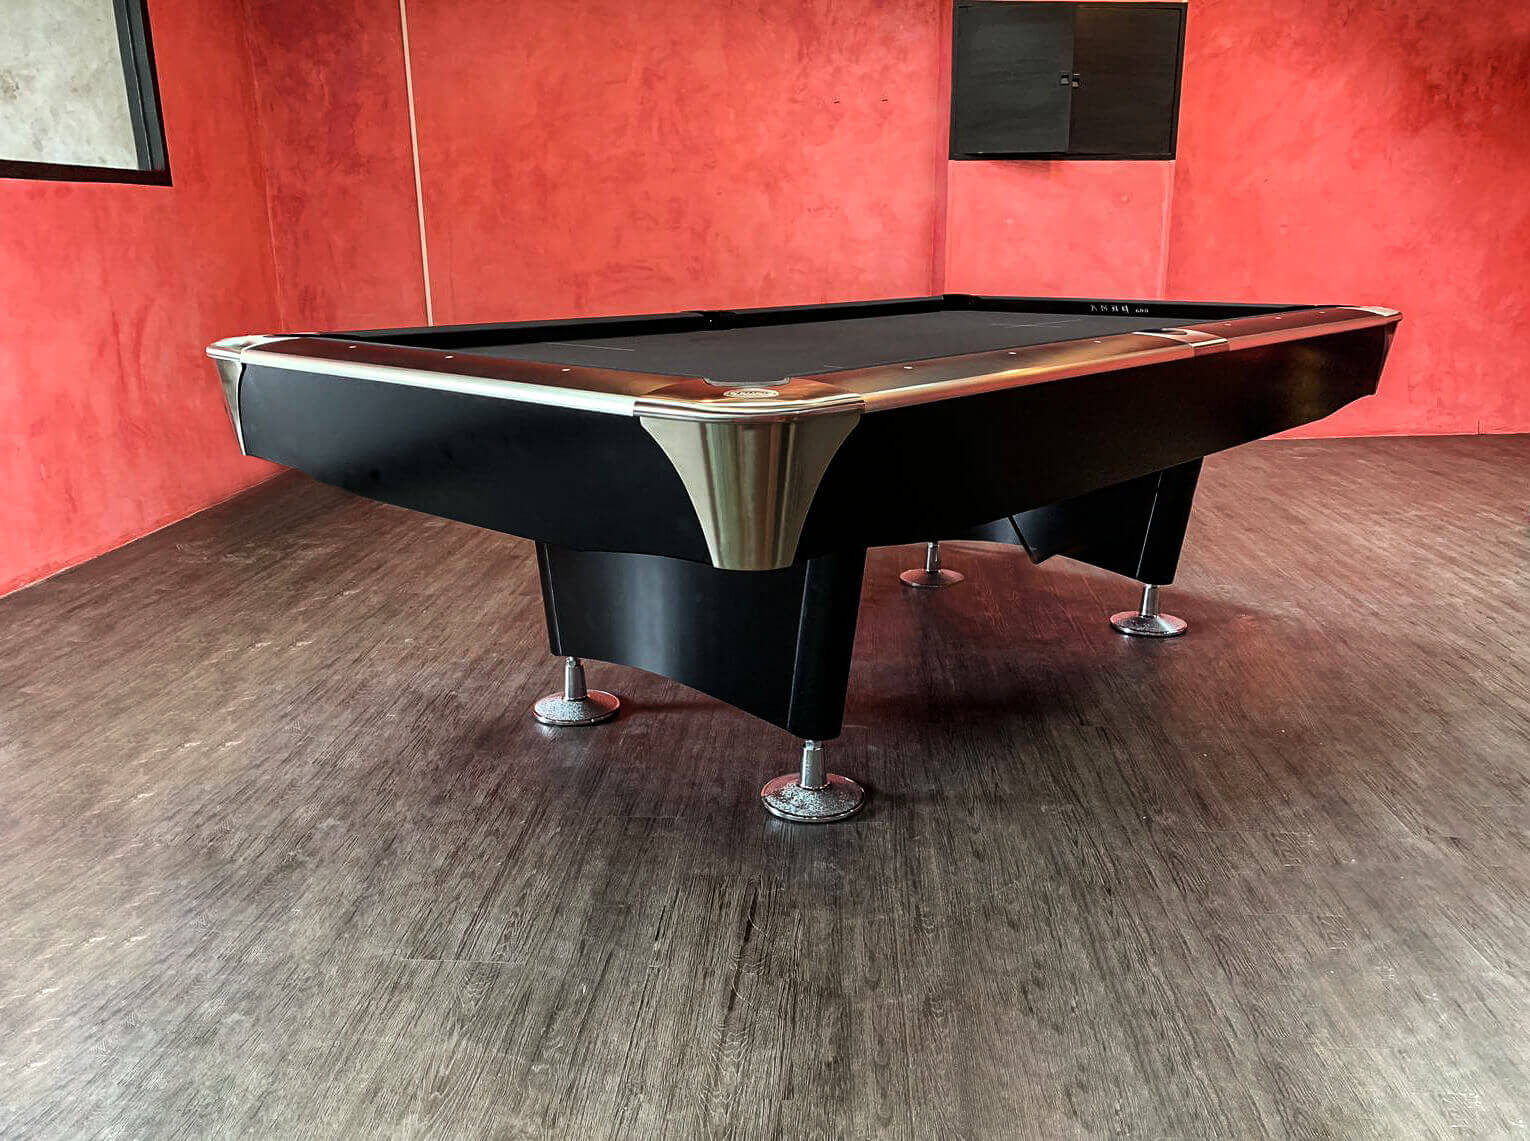 Rhino X8 Pool Table